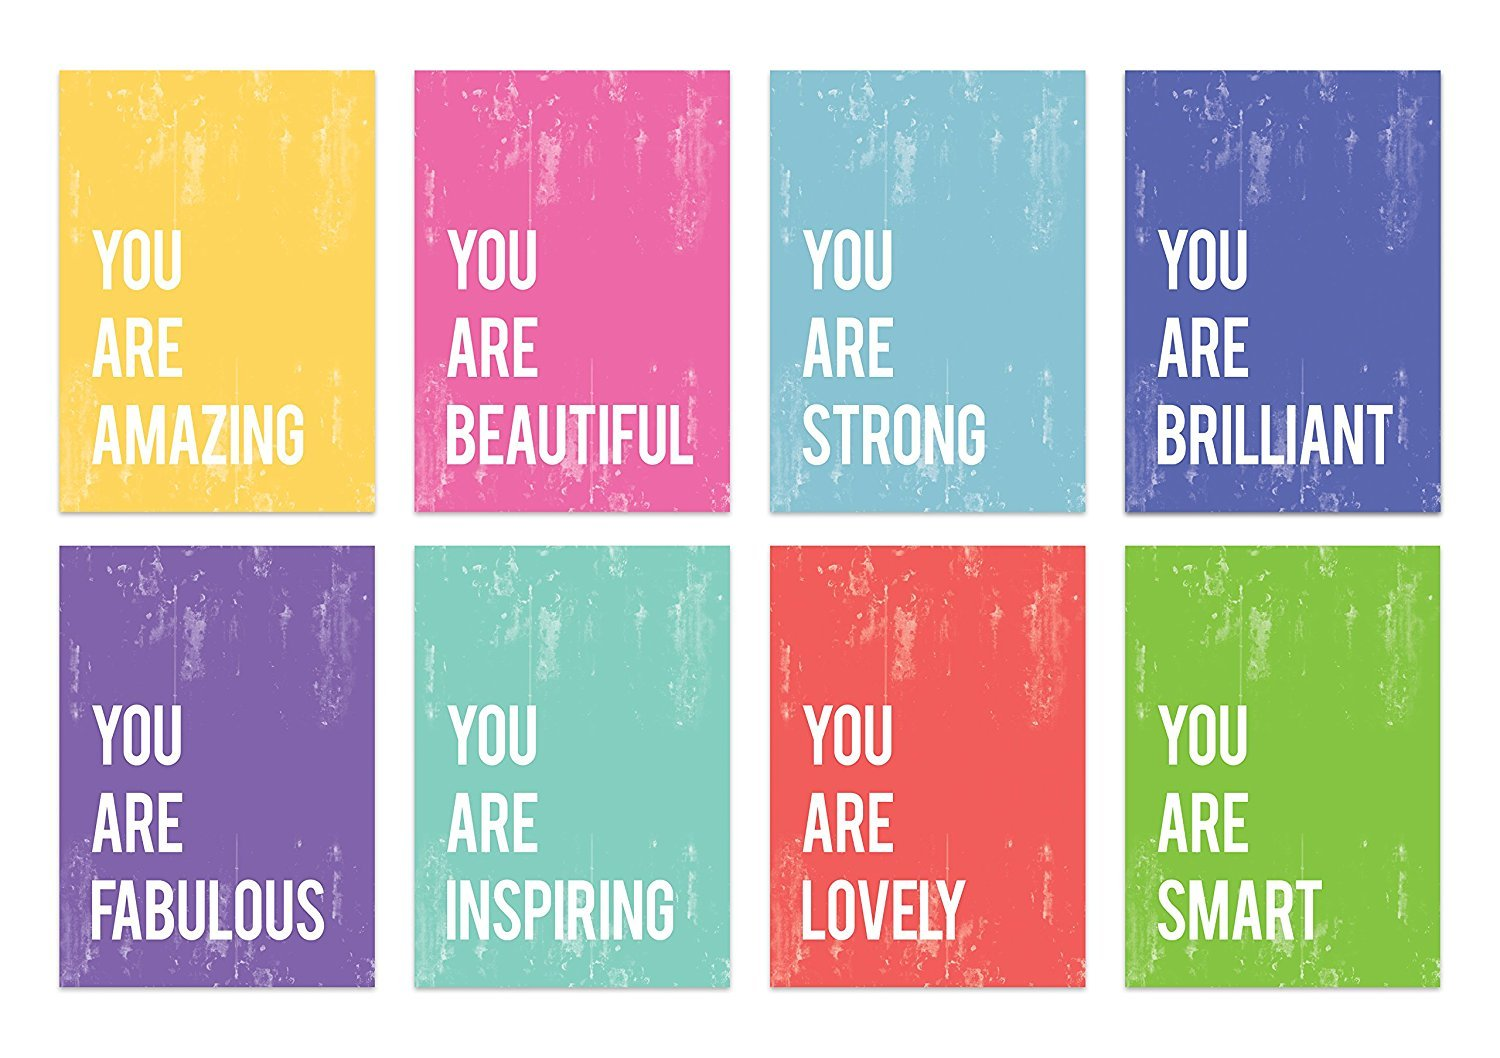 You are Mini Collection 08x10 Inch Print Wall Art Prints, Typography, Nursery Decor, Kid's Wall Art Print, Kid's Room Decor, Gender Neutral, Motivational Word Art, Inspirational Artwork by Children Inspire Design